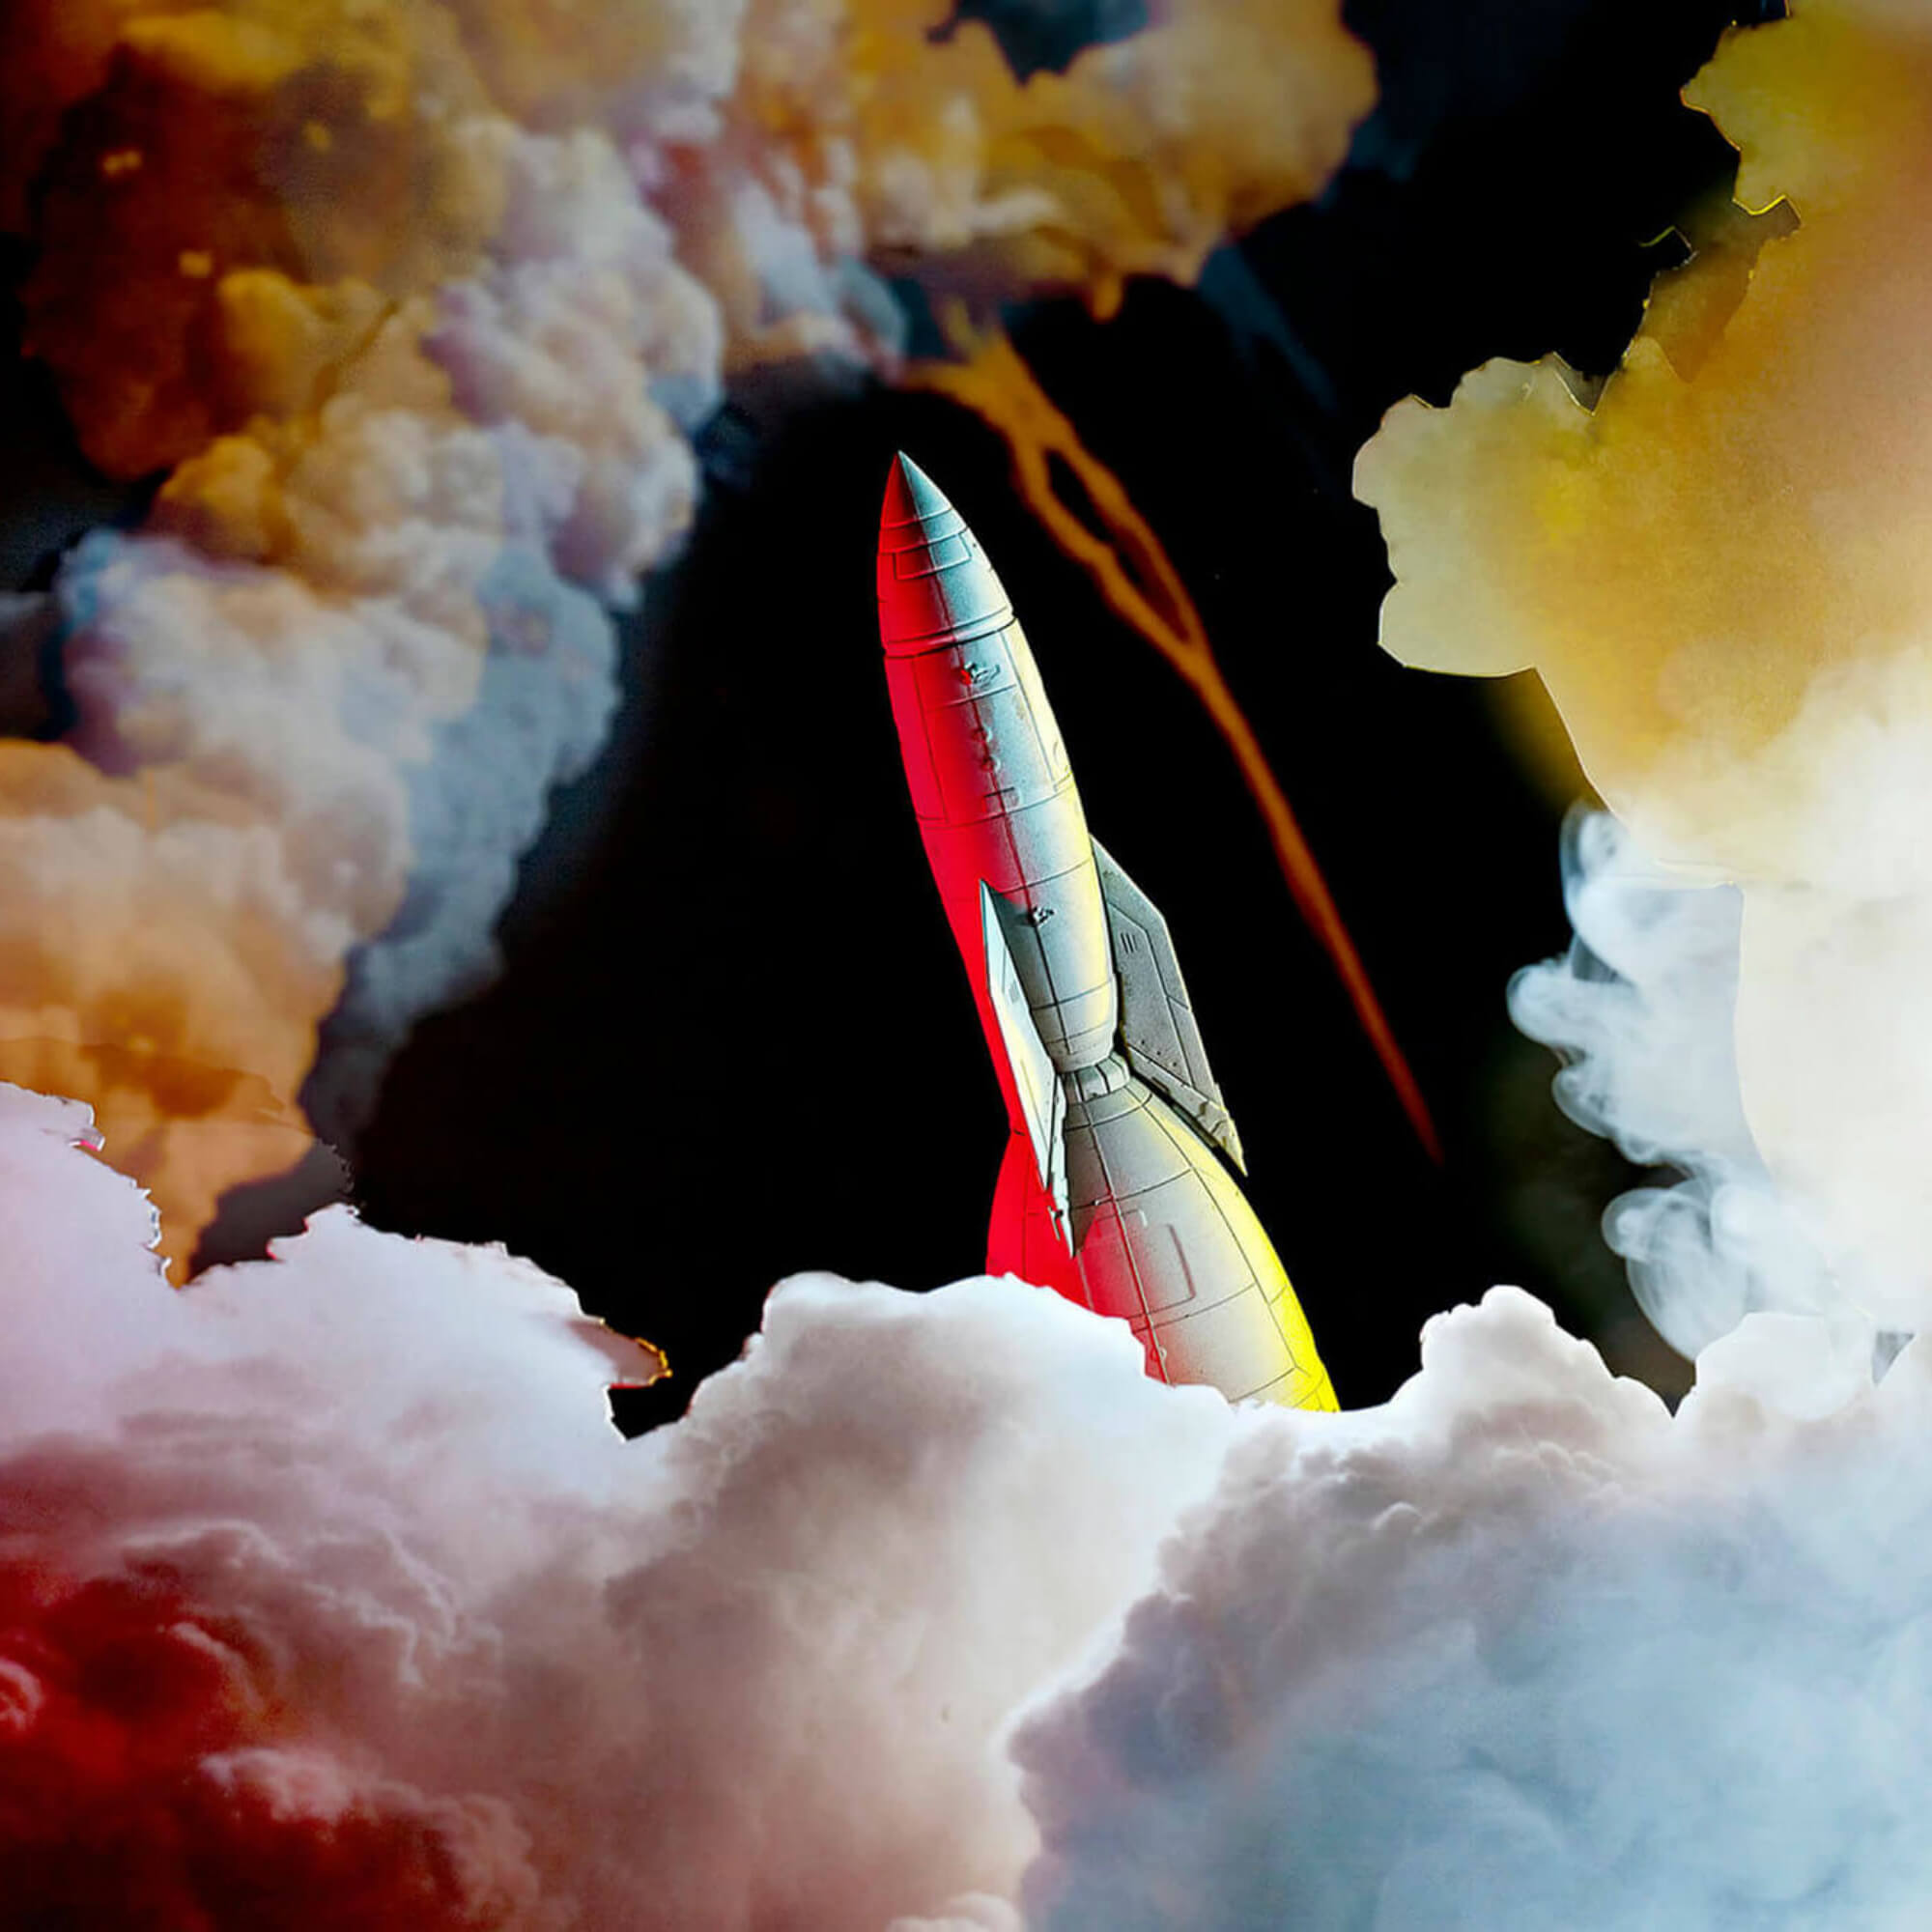 Photograph of a model rocket launching from clouds